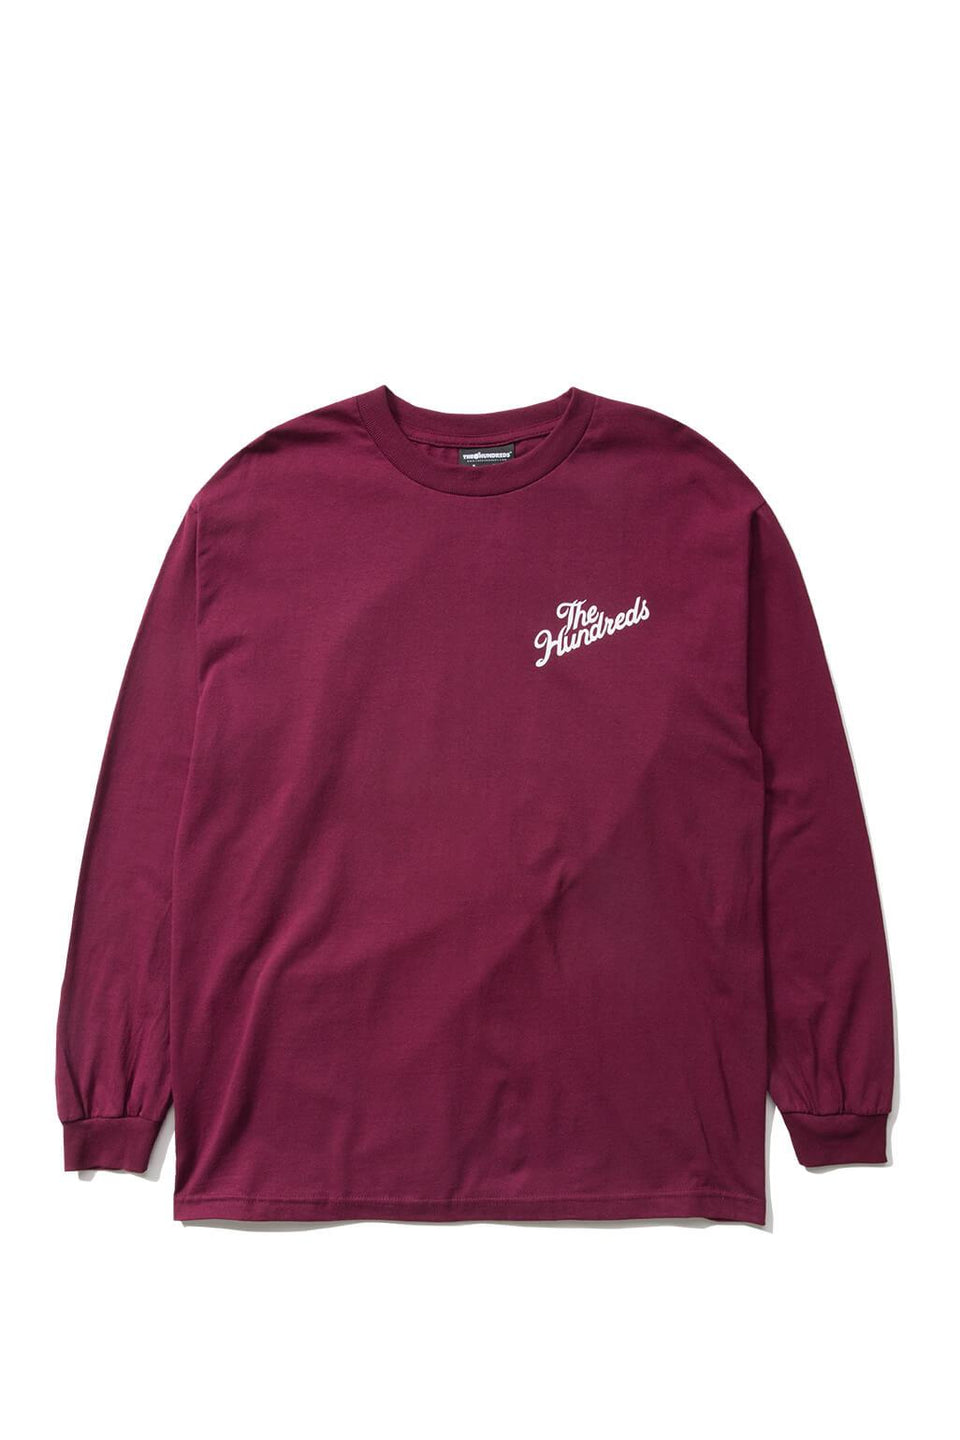 The Hundreds Forever Slant Crest Longsleeve Shirt Burgundy Front